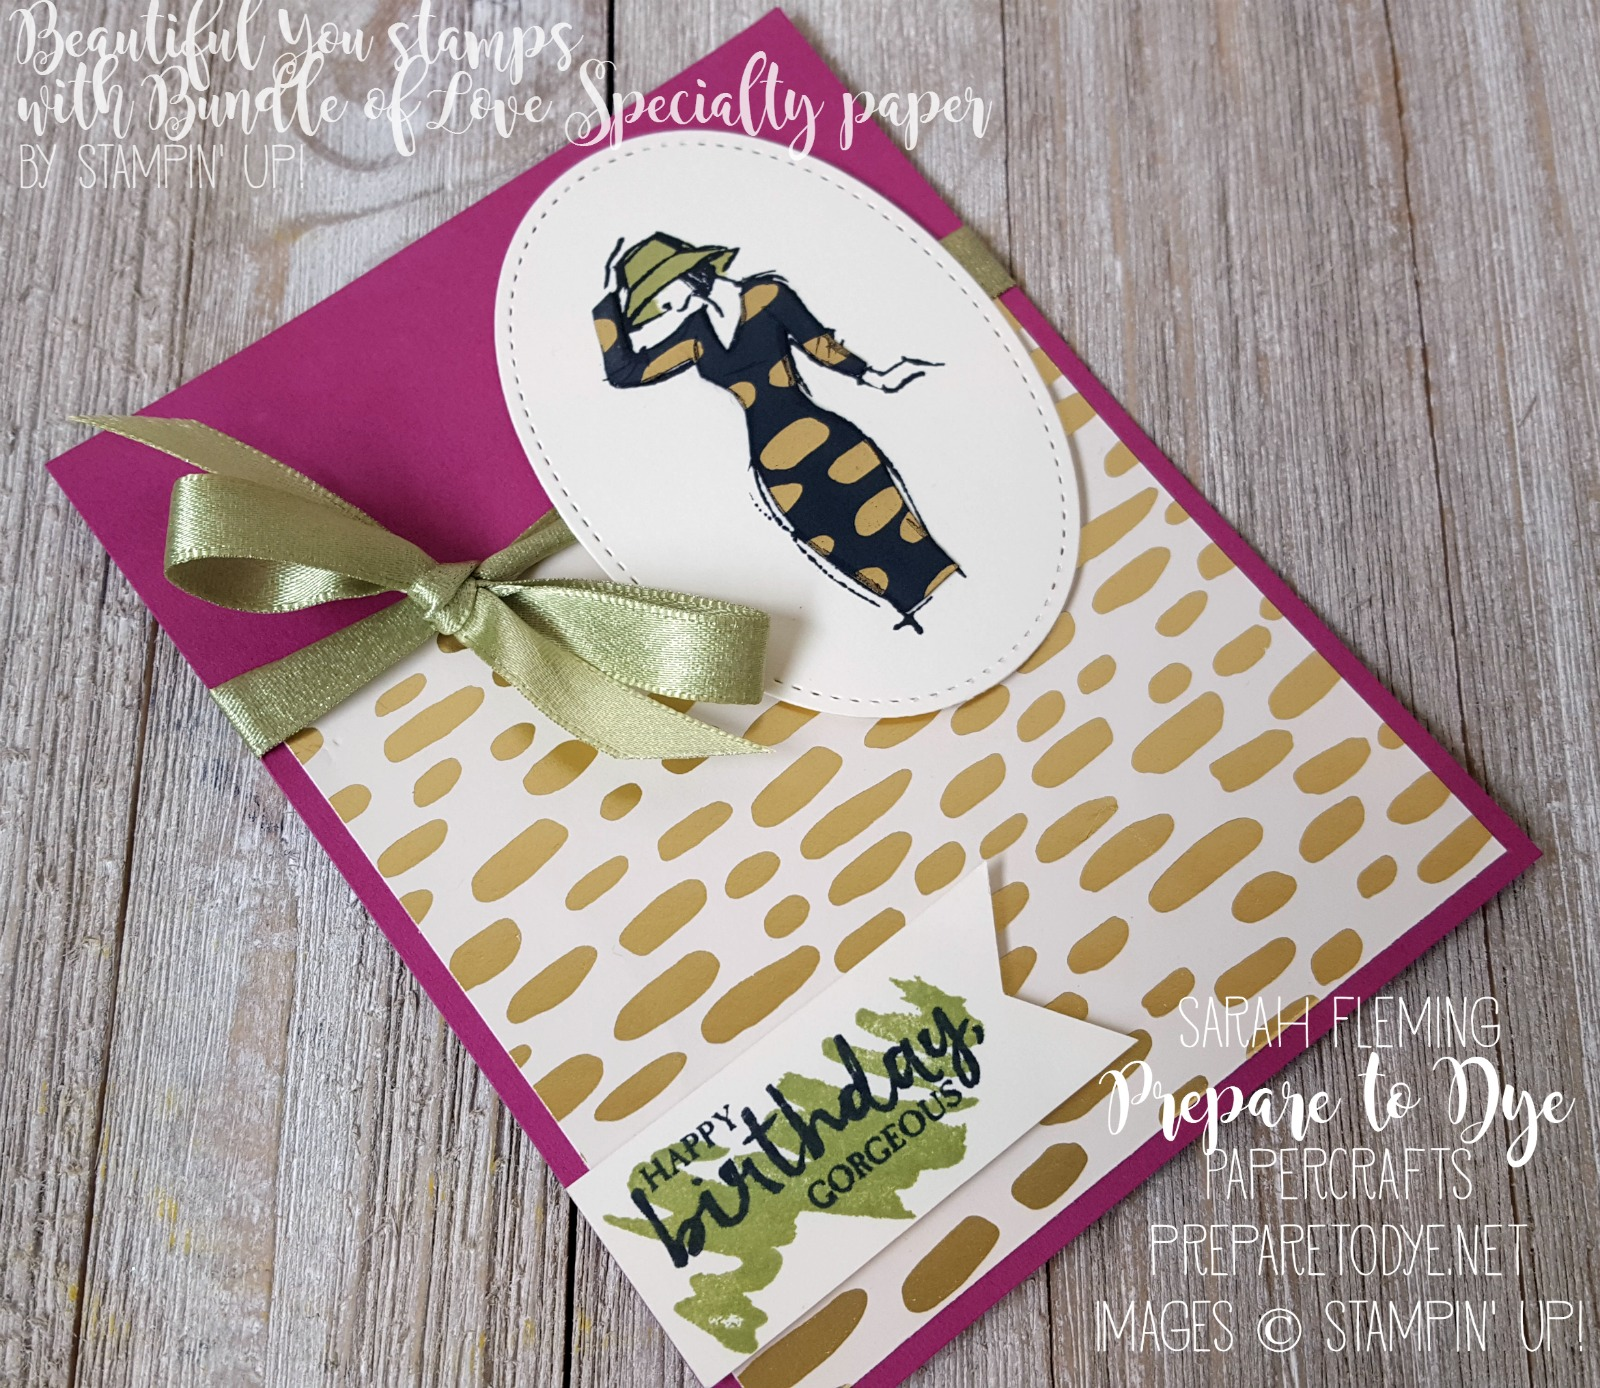 Stampin' Up! Beautiful You stamp set (available now) with Bundle of Love paper (coming soon) - handmade birthday card - Sarah Fleming - Prepare to Dye Papercrafts